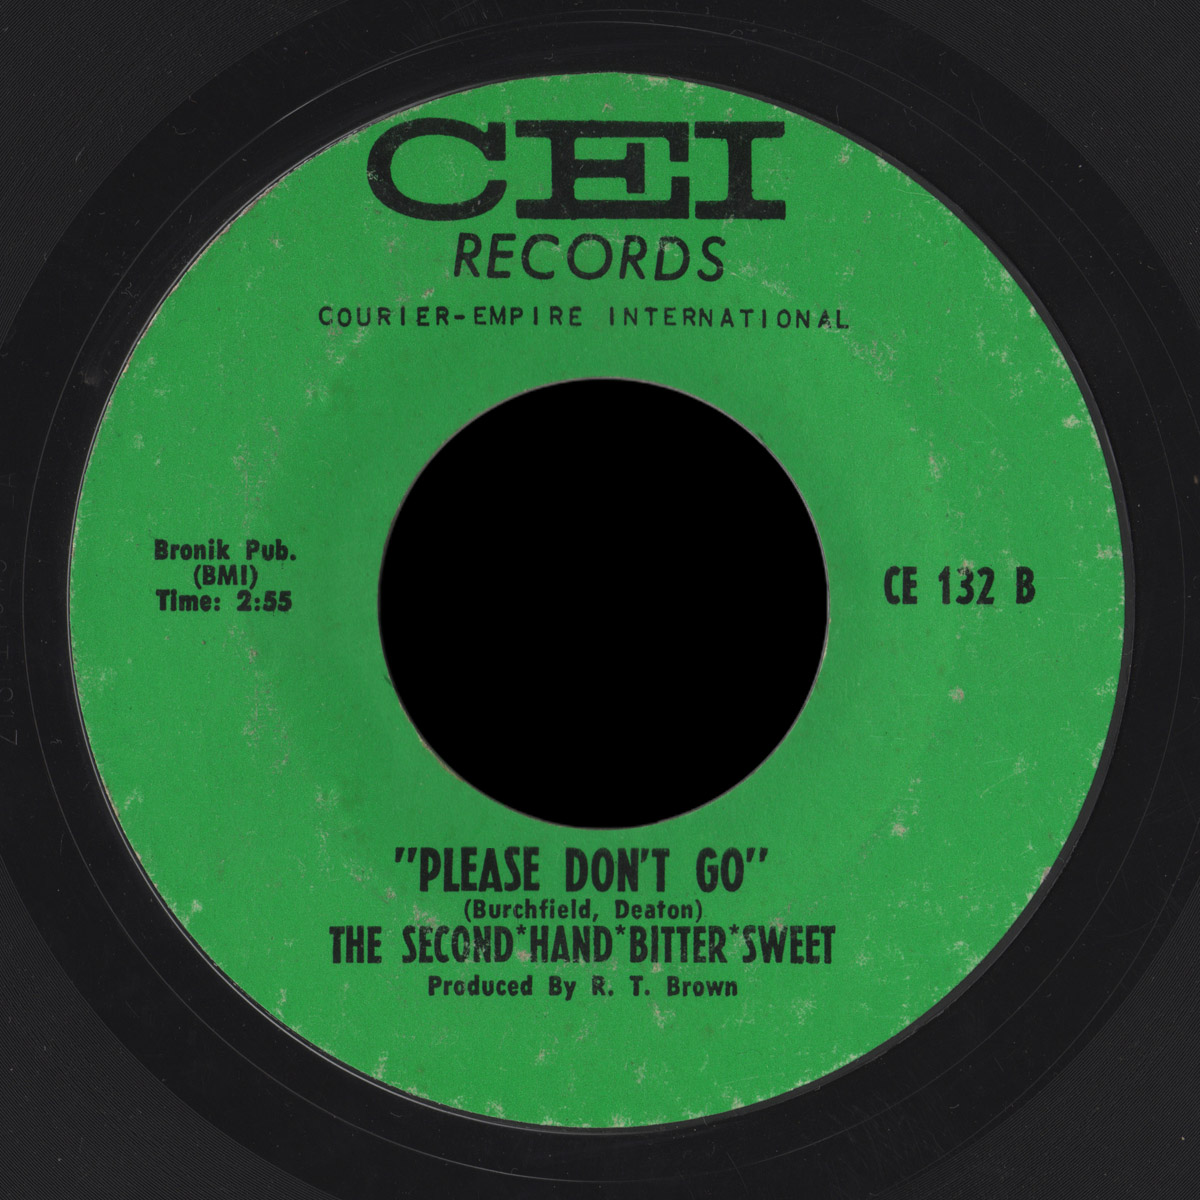 Second-Hand Bitter-Sweet CEI 45 Please Don't Go